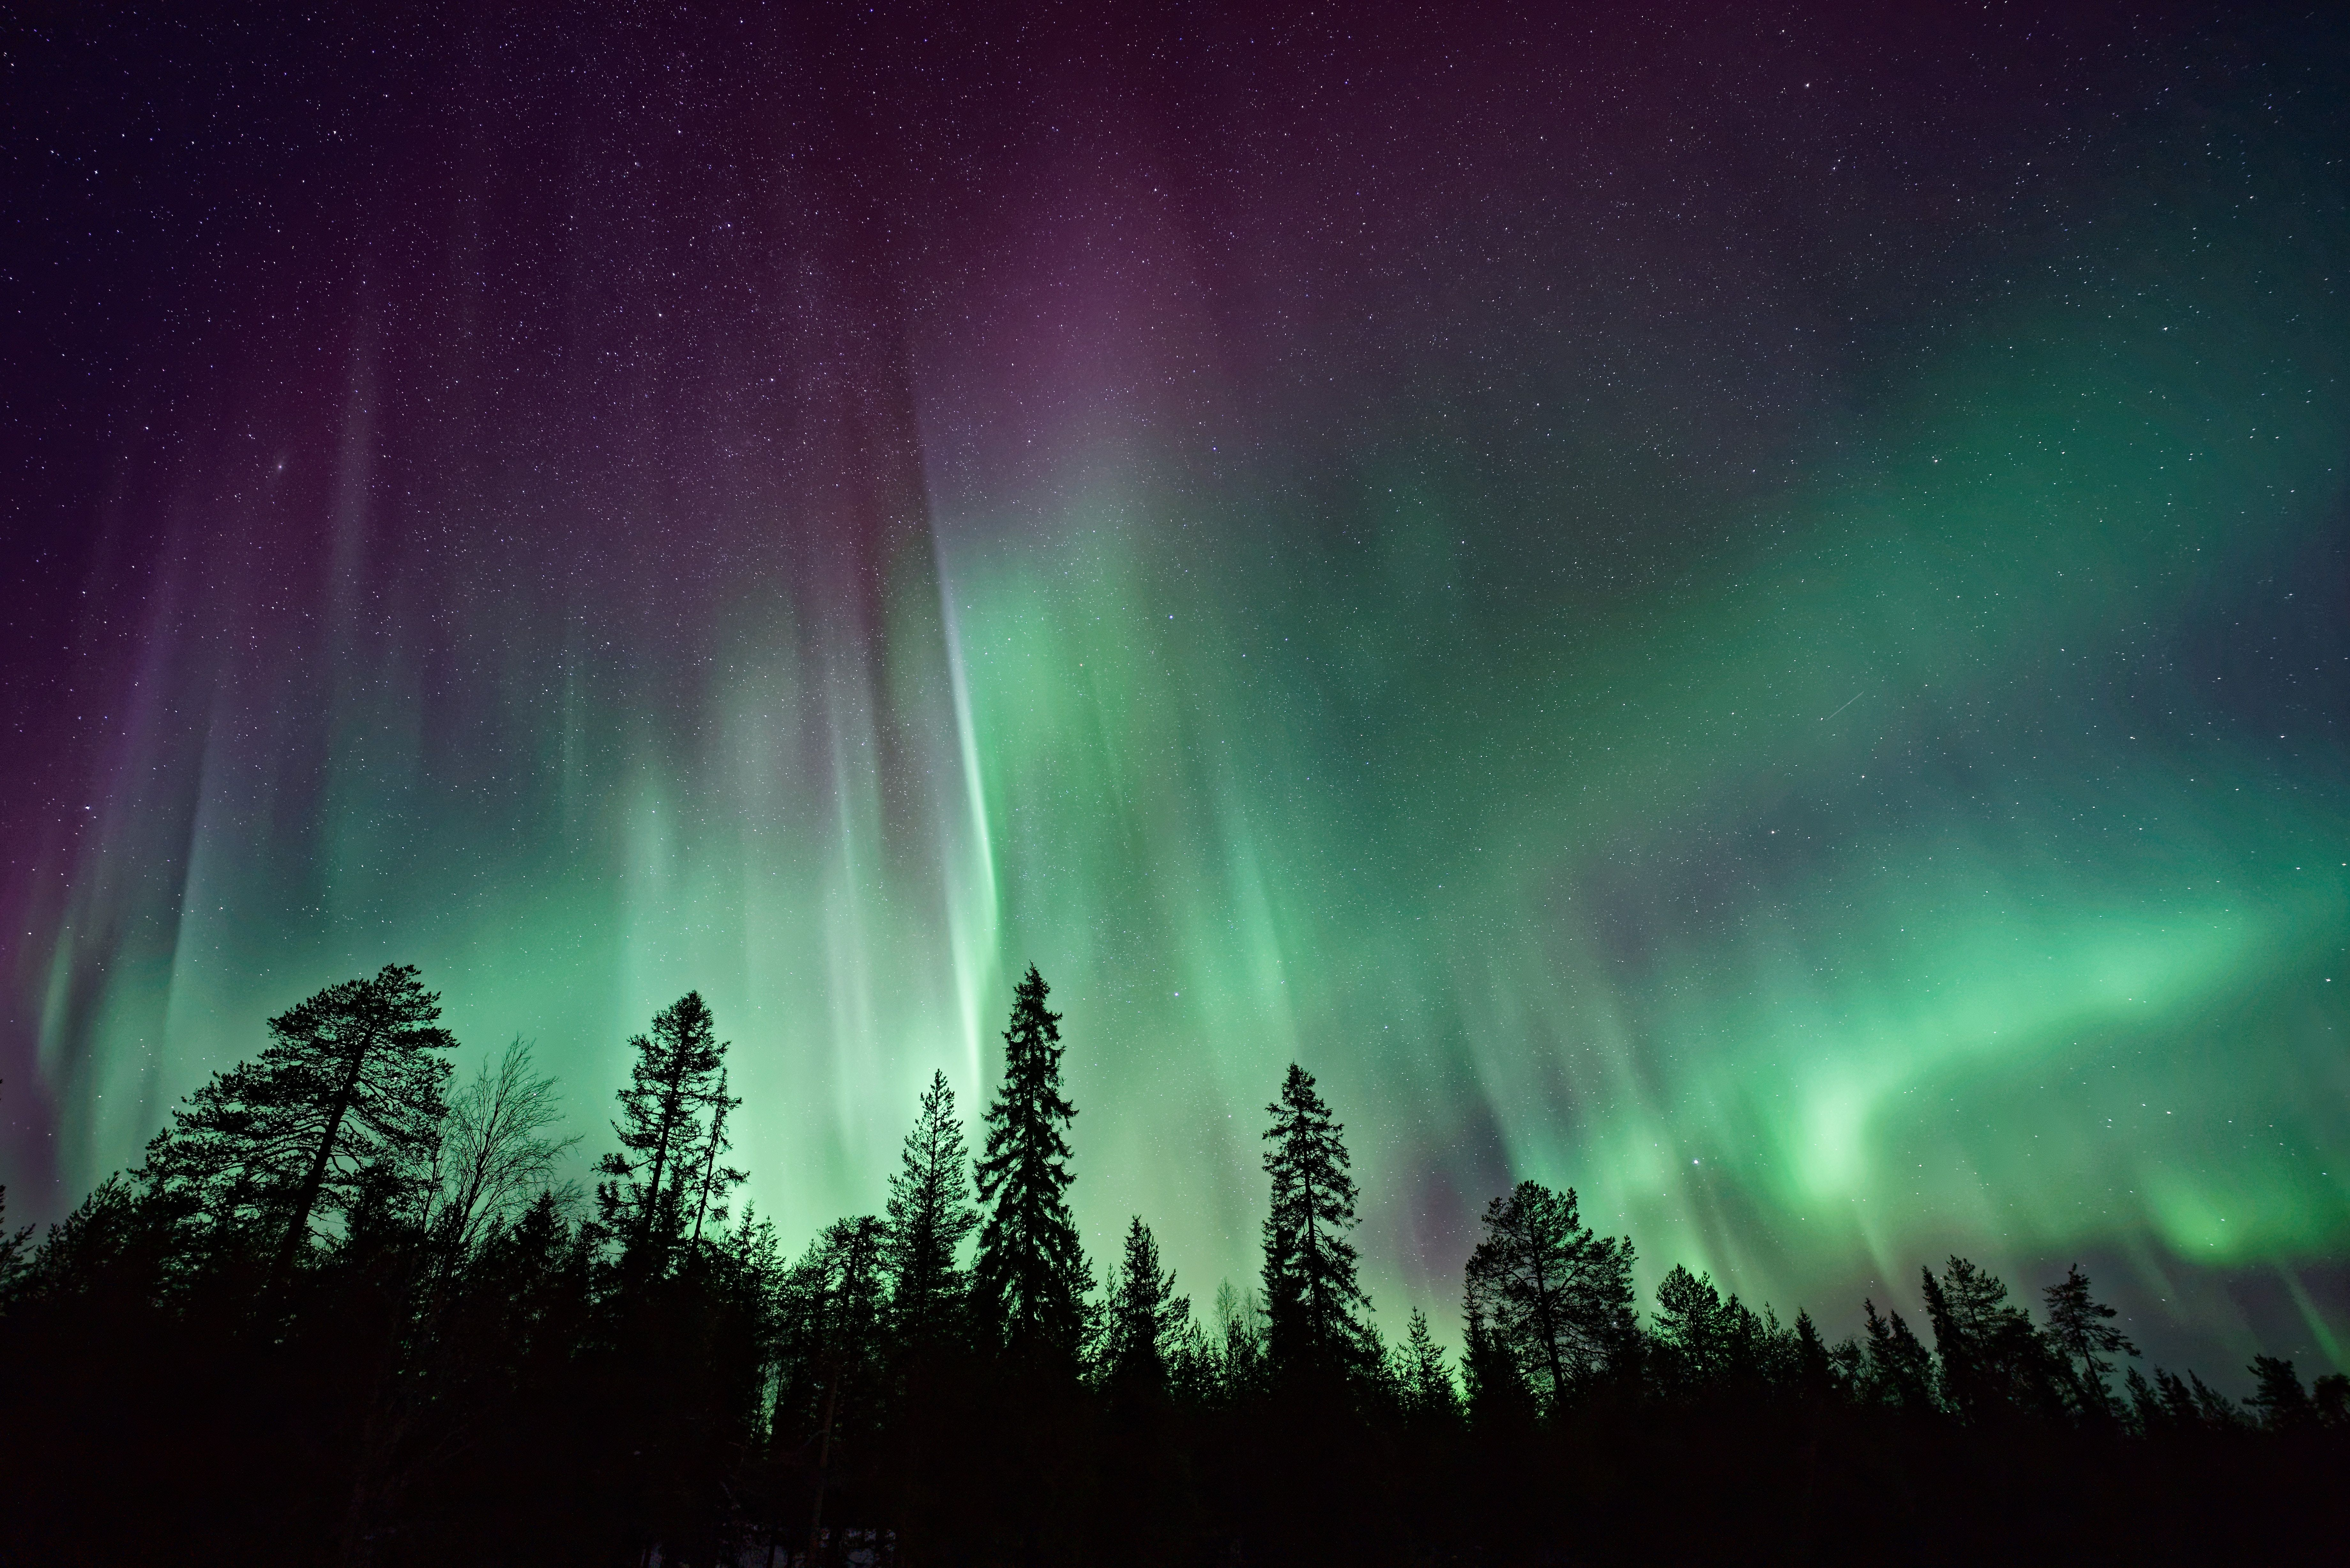 Hd Wallpaper Aurora Borealis On A Night Sky Over Silhouettes Of Trees Aurora Light Wa Northern Lights Wallpaper Northern Lights See The Northern Lights